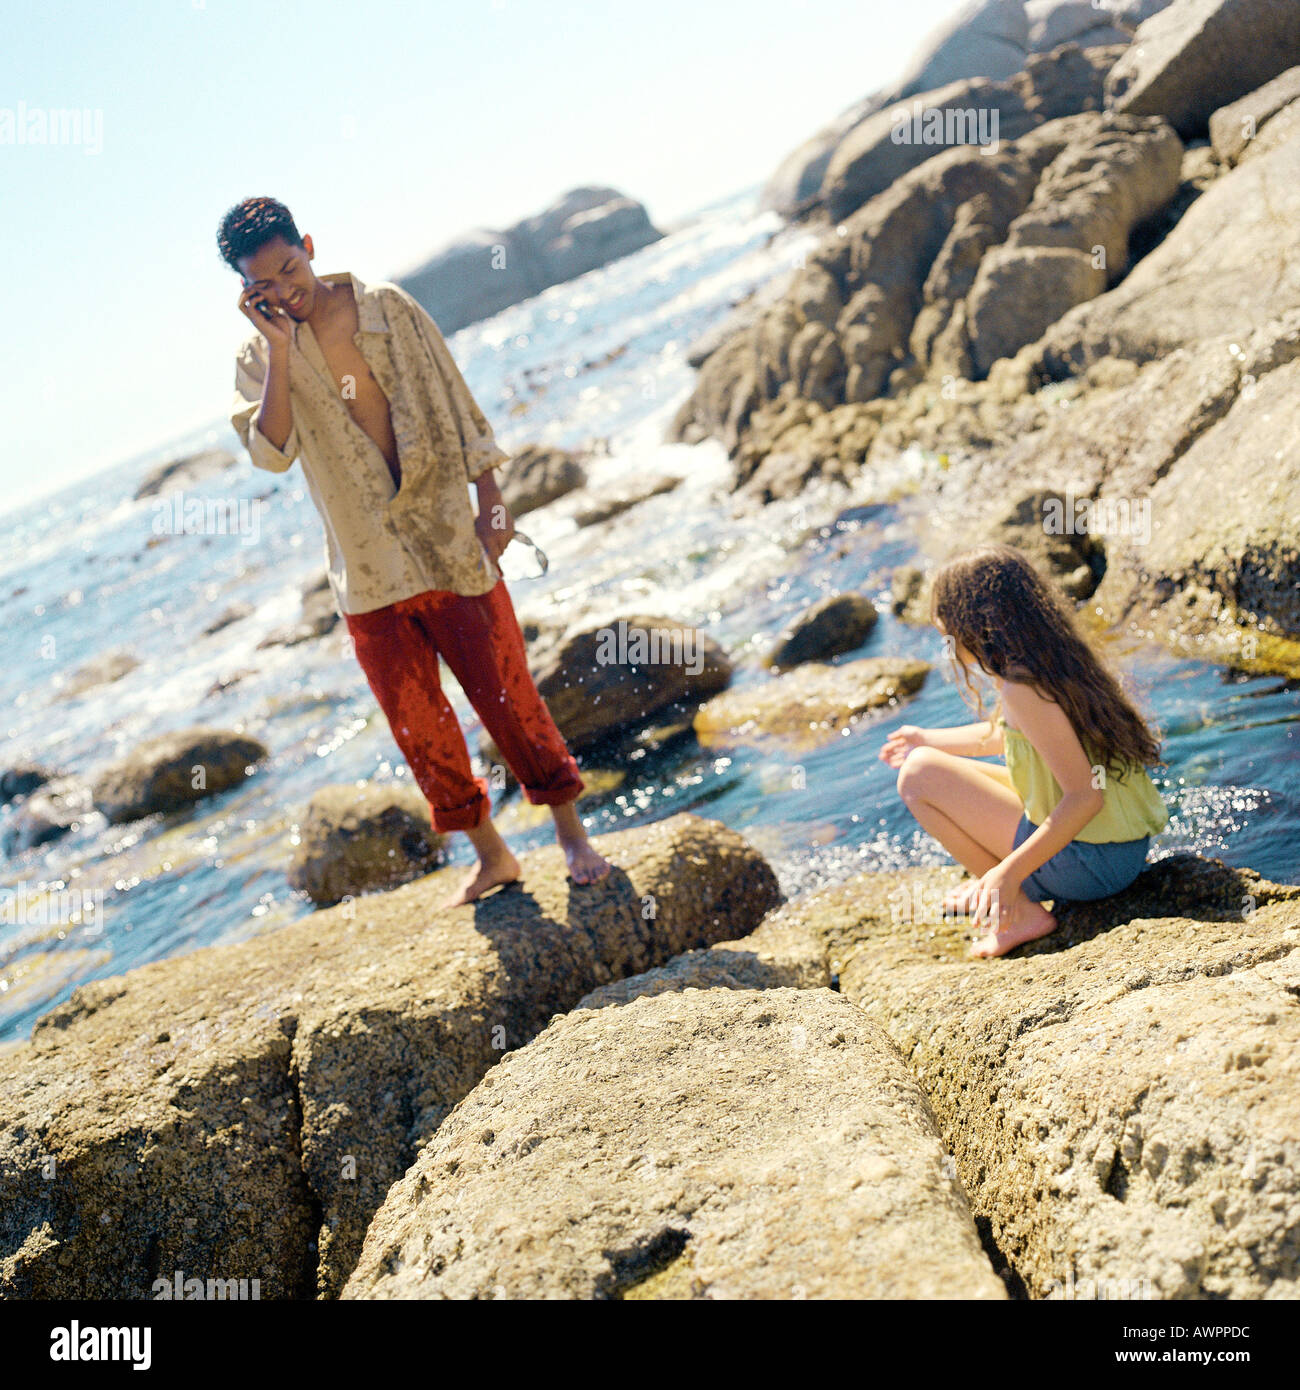 Teenager using cell phone, child sitting on rock - Stock Image